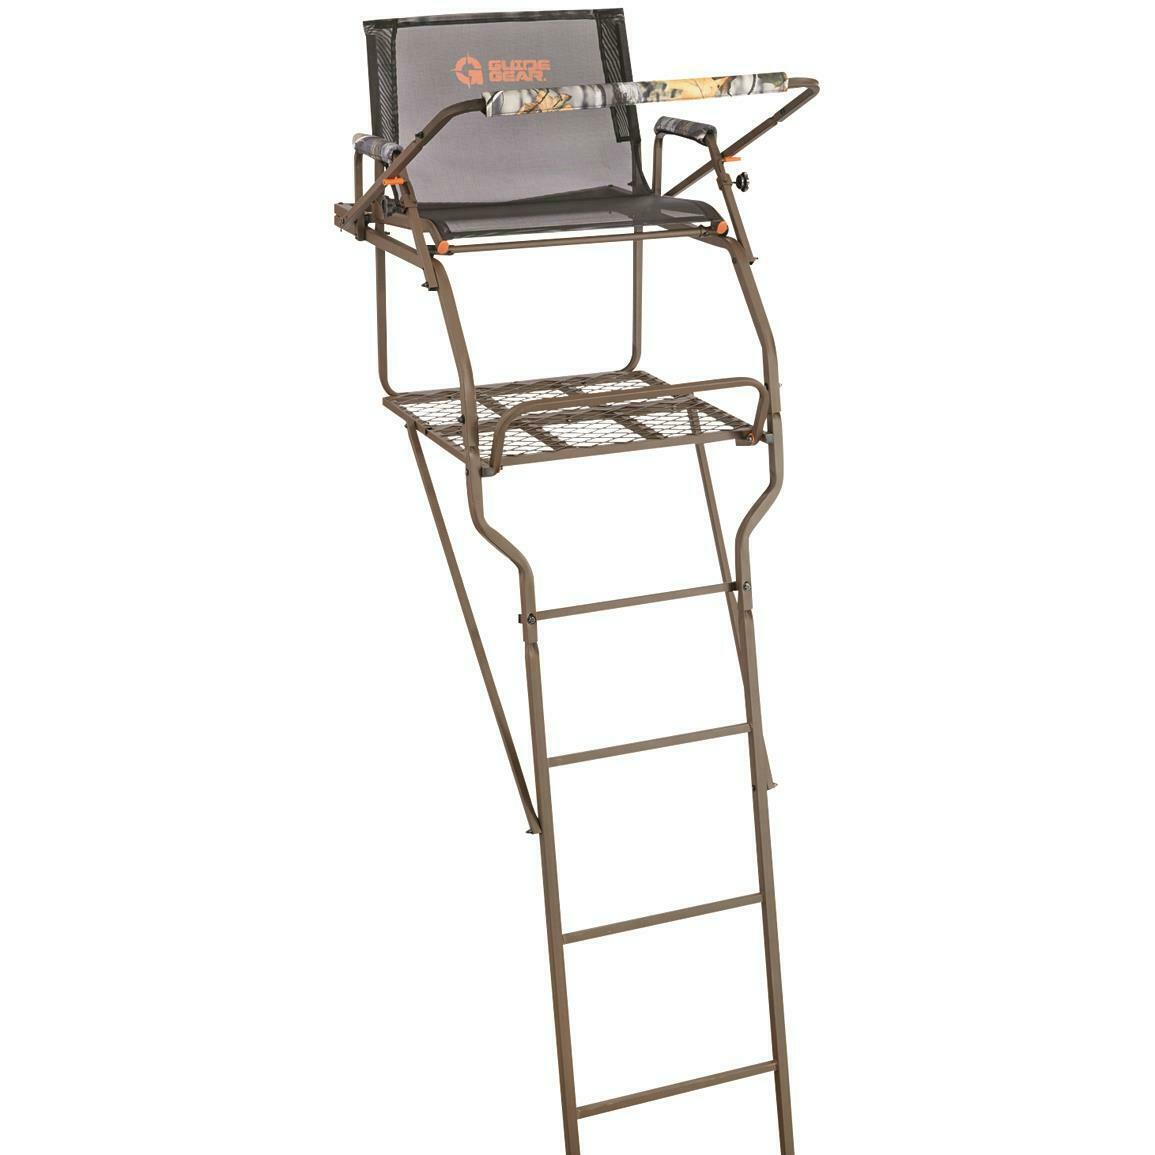 NEW+ Guide Gear 18' Ultra Comfort Ladder Tree Stand